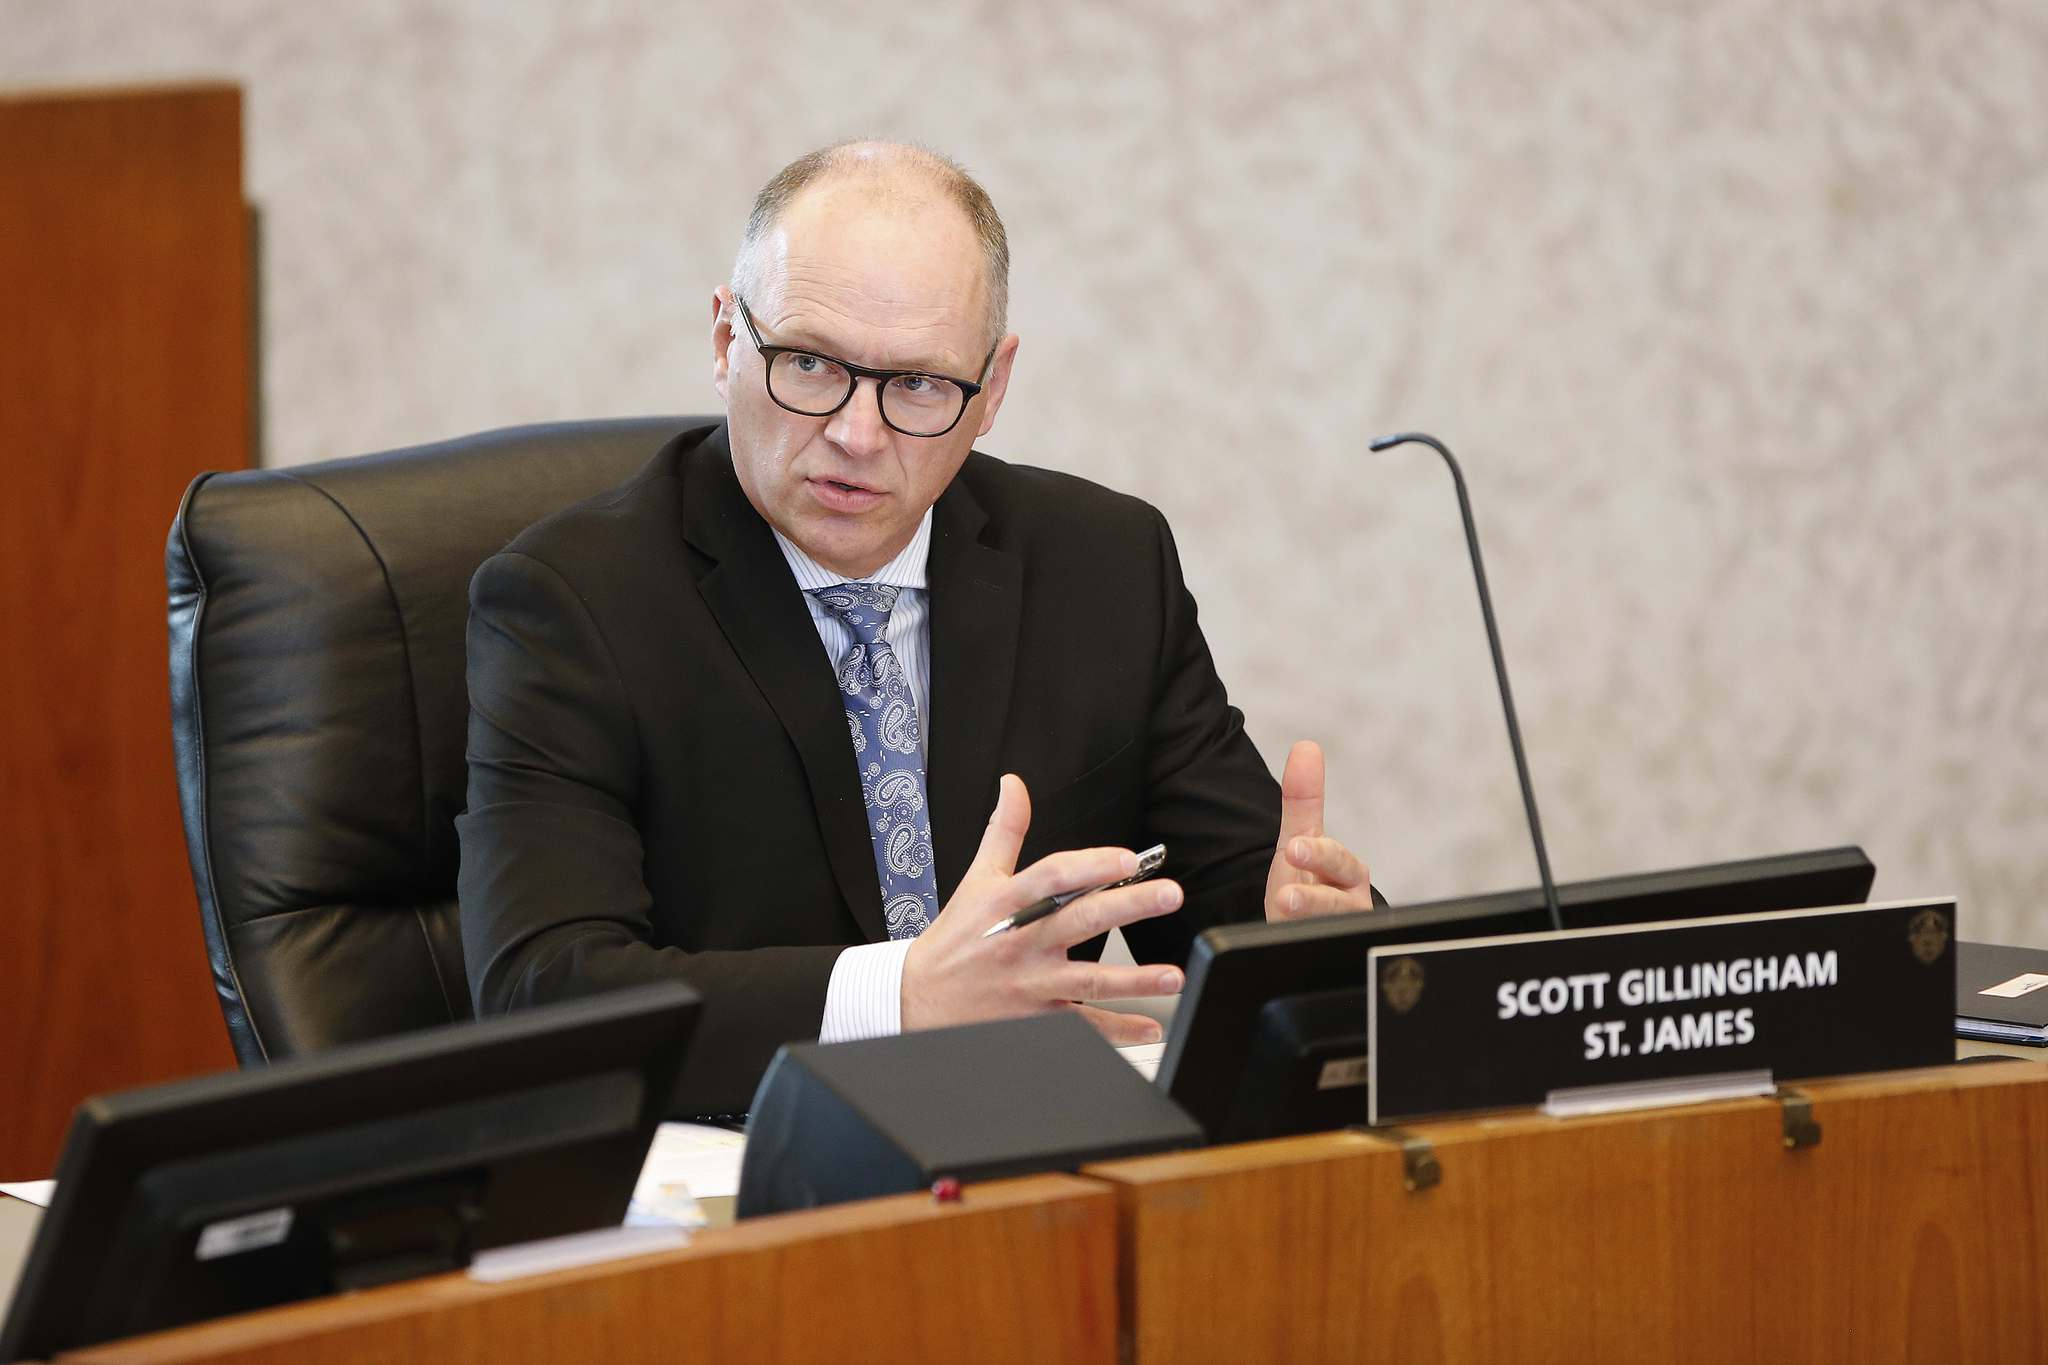 The impact of the city budget gets worse every month the pandemic drags on, says Coun. Scott Gillingham, chairman of the finance committee. (John Woods / Winnipeg Free Press files)</p>